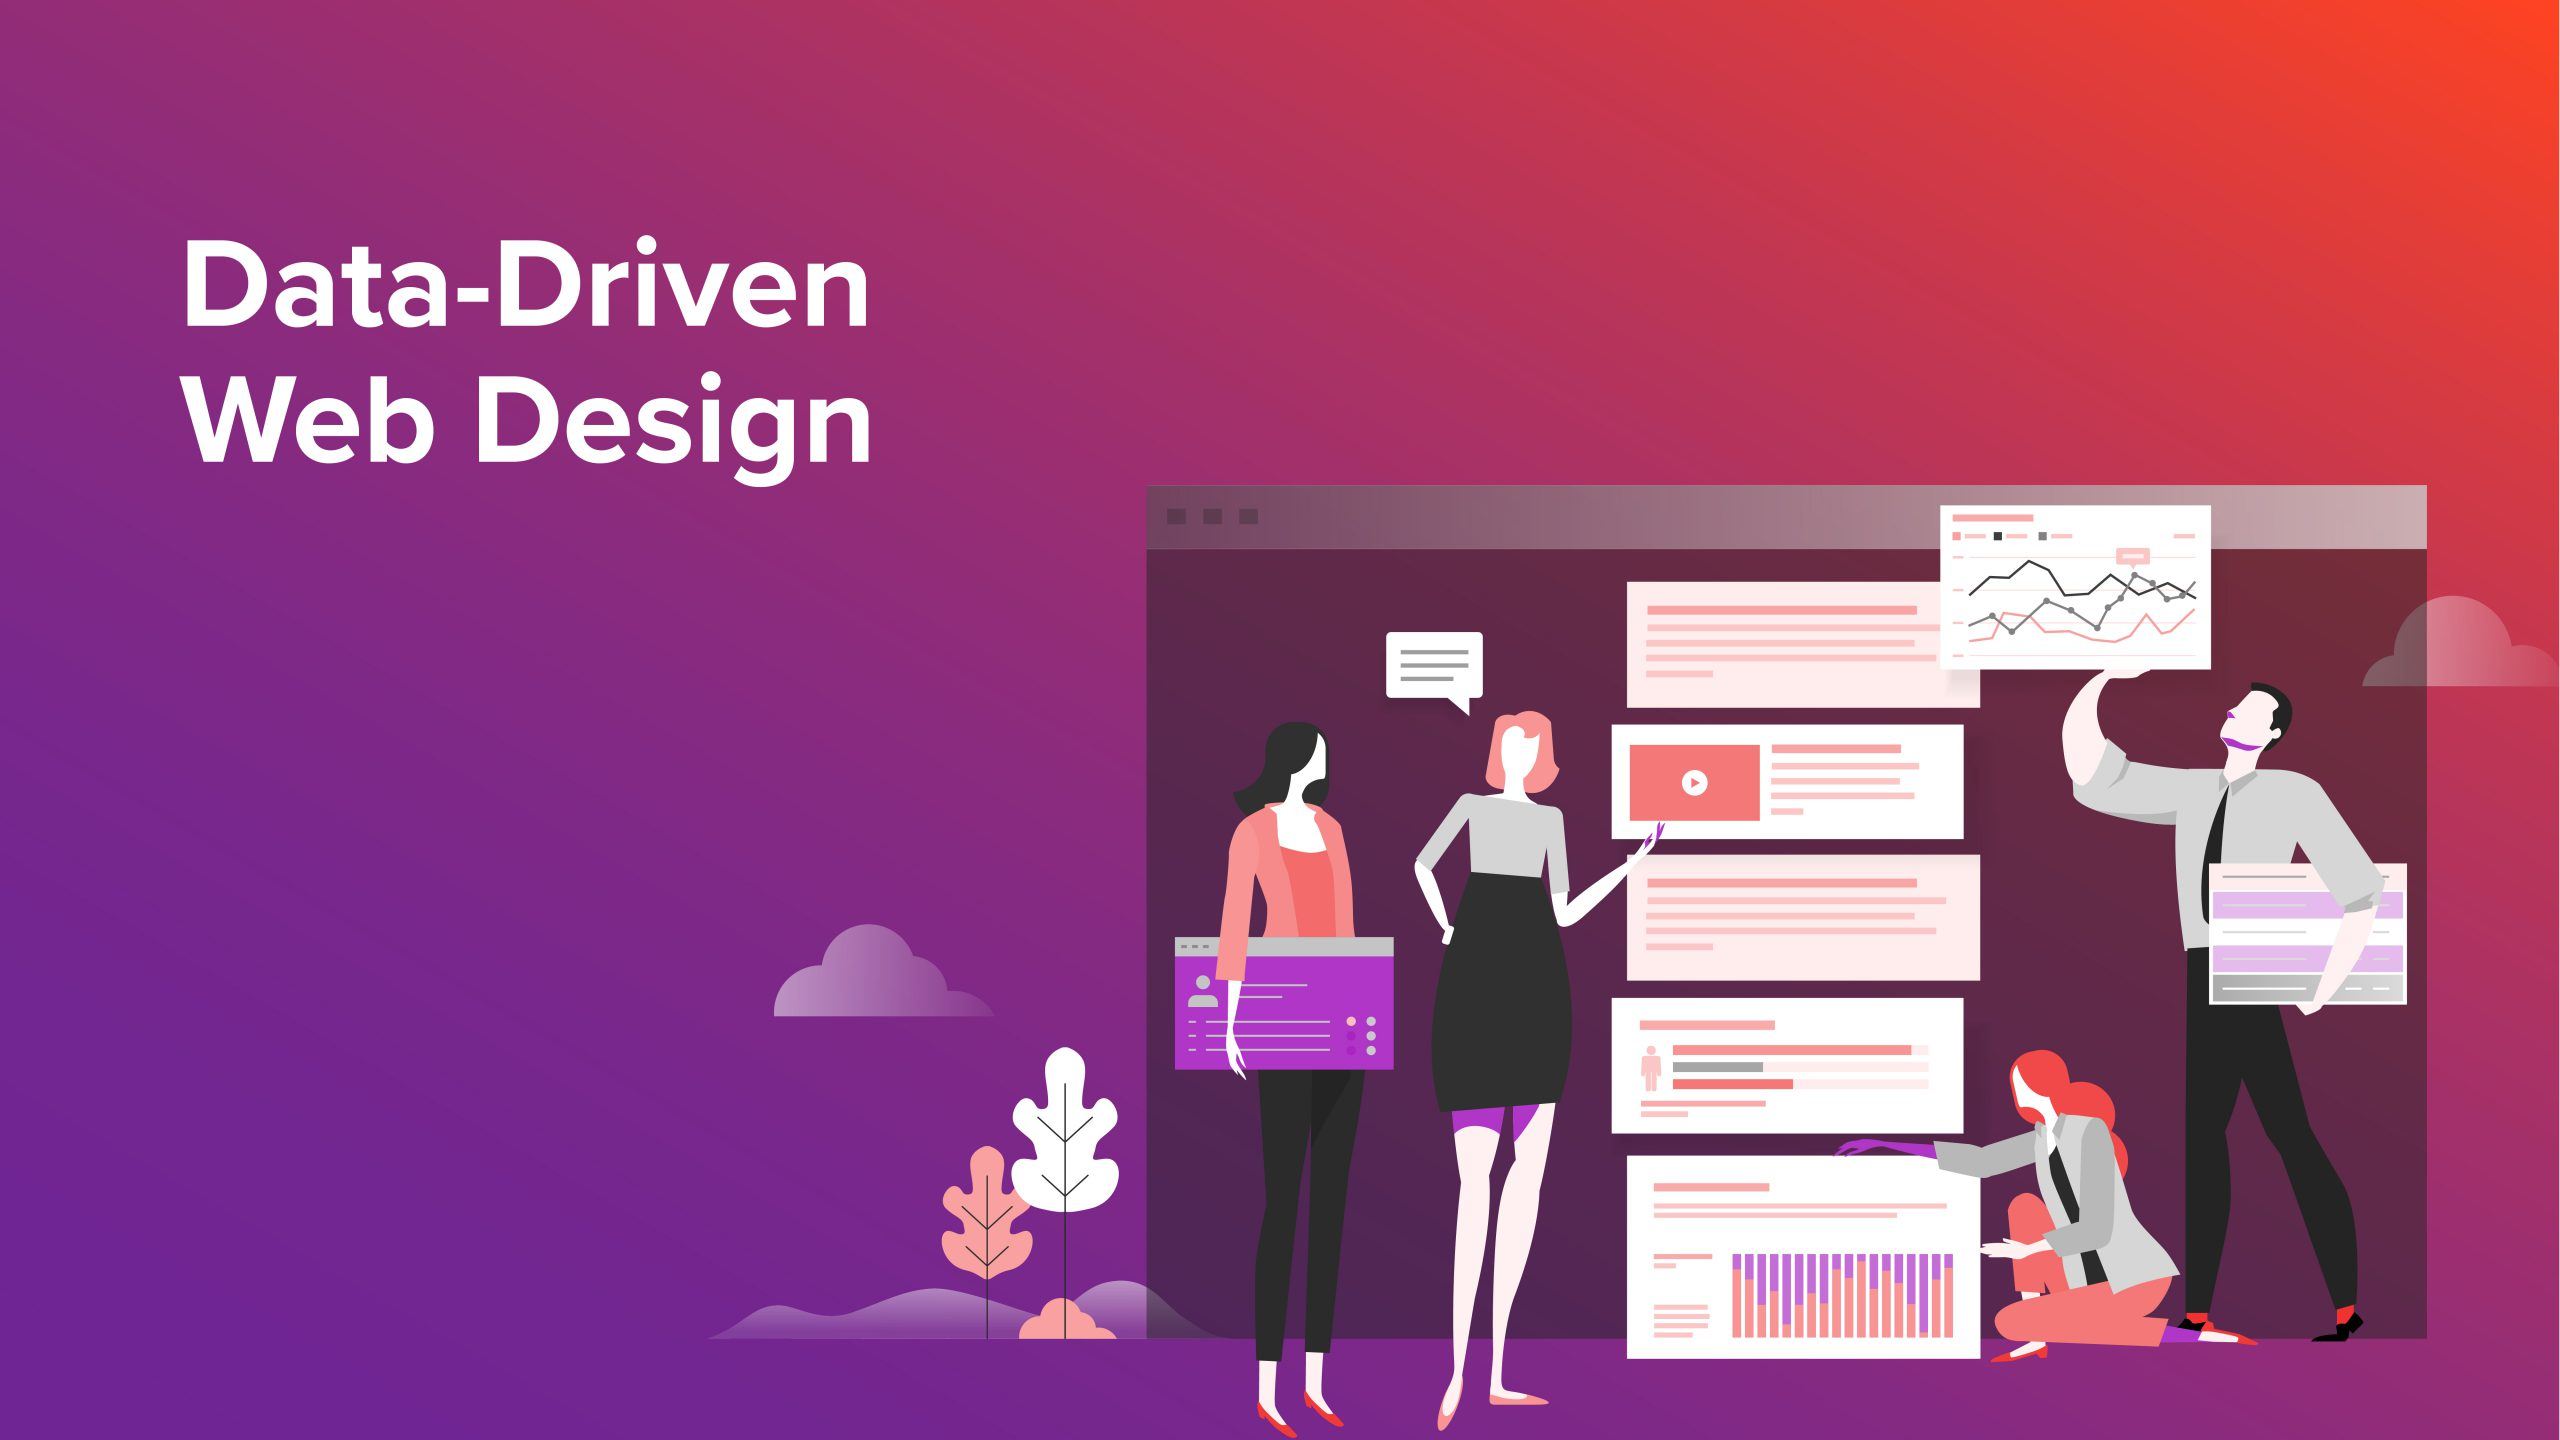 What is Data-Driven Web Design?